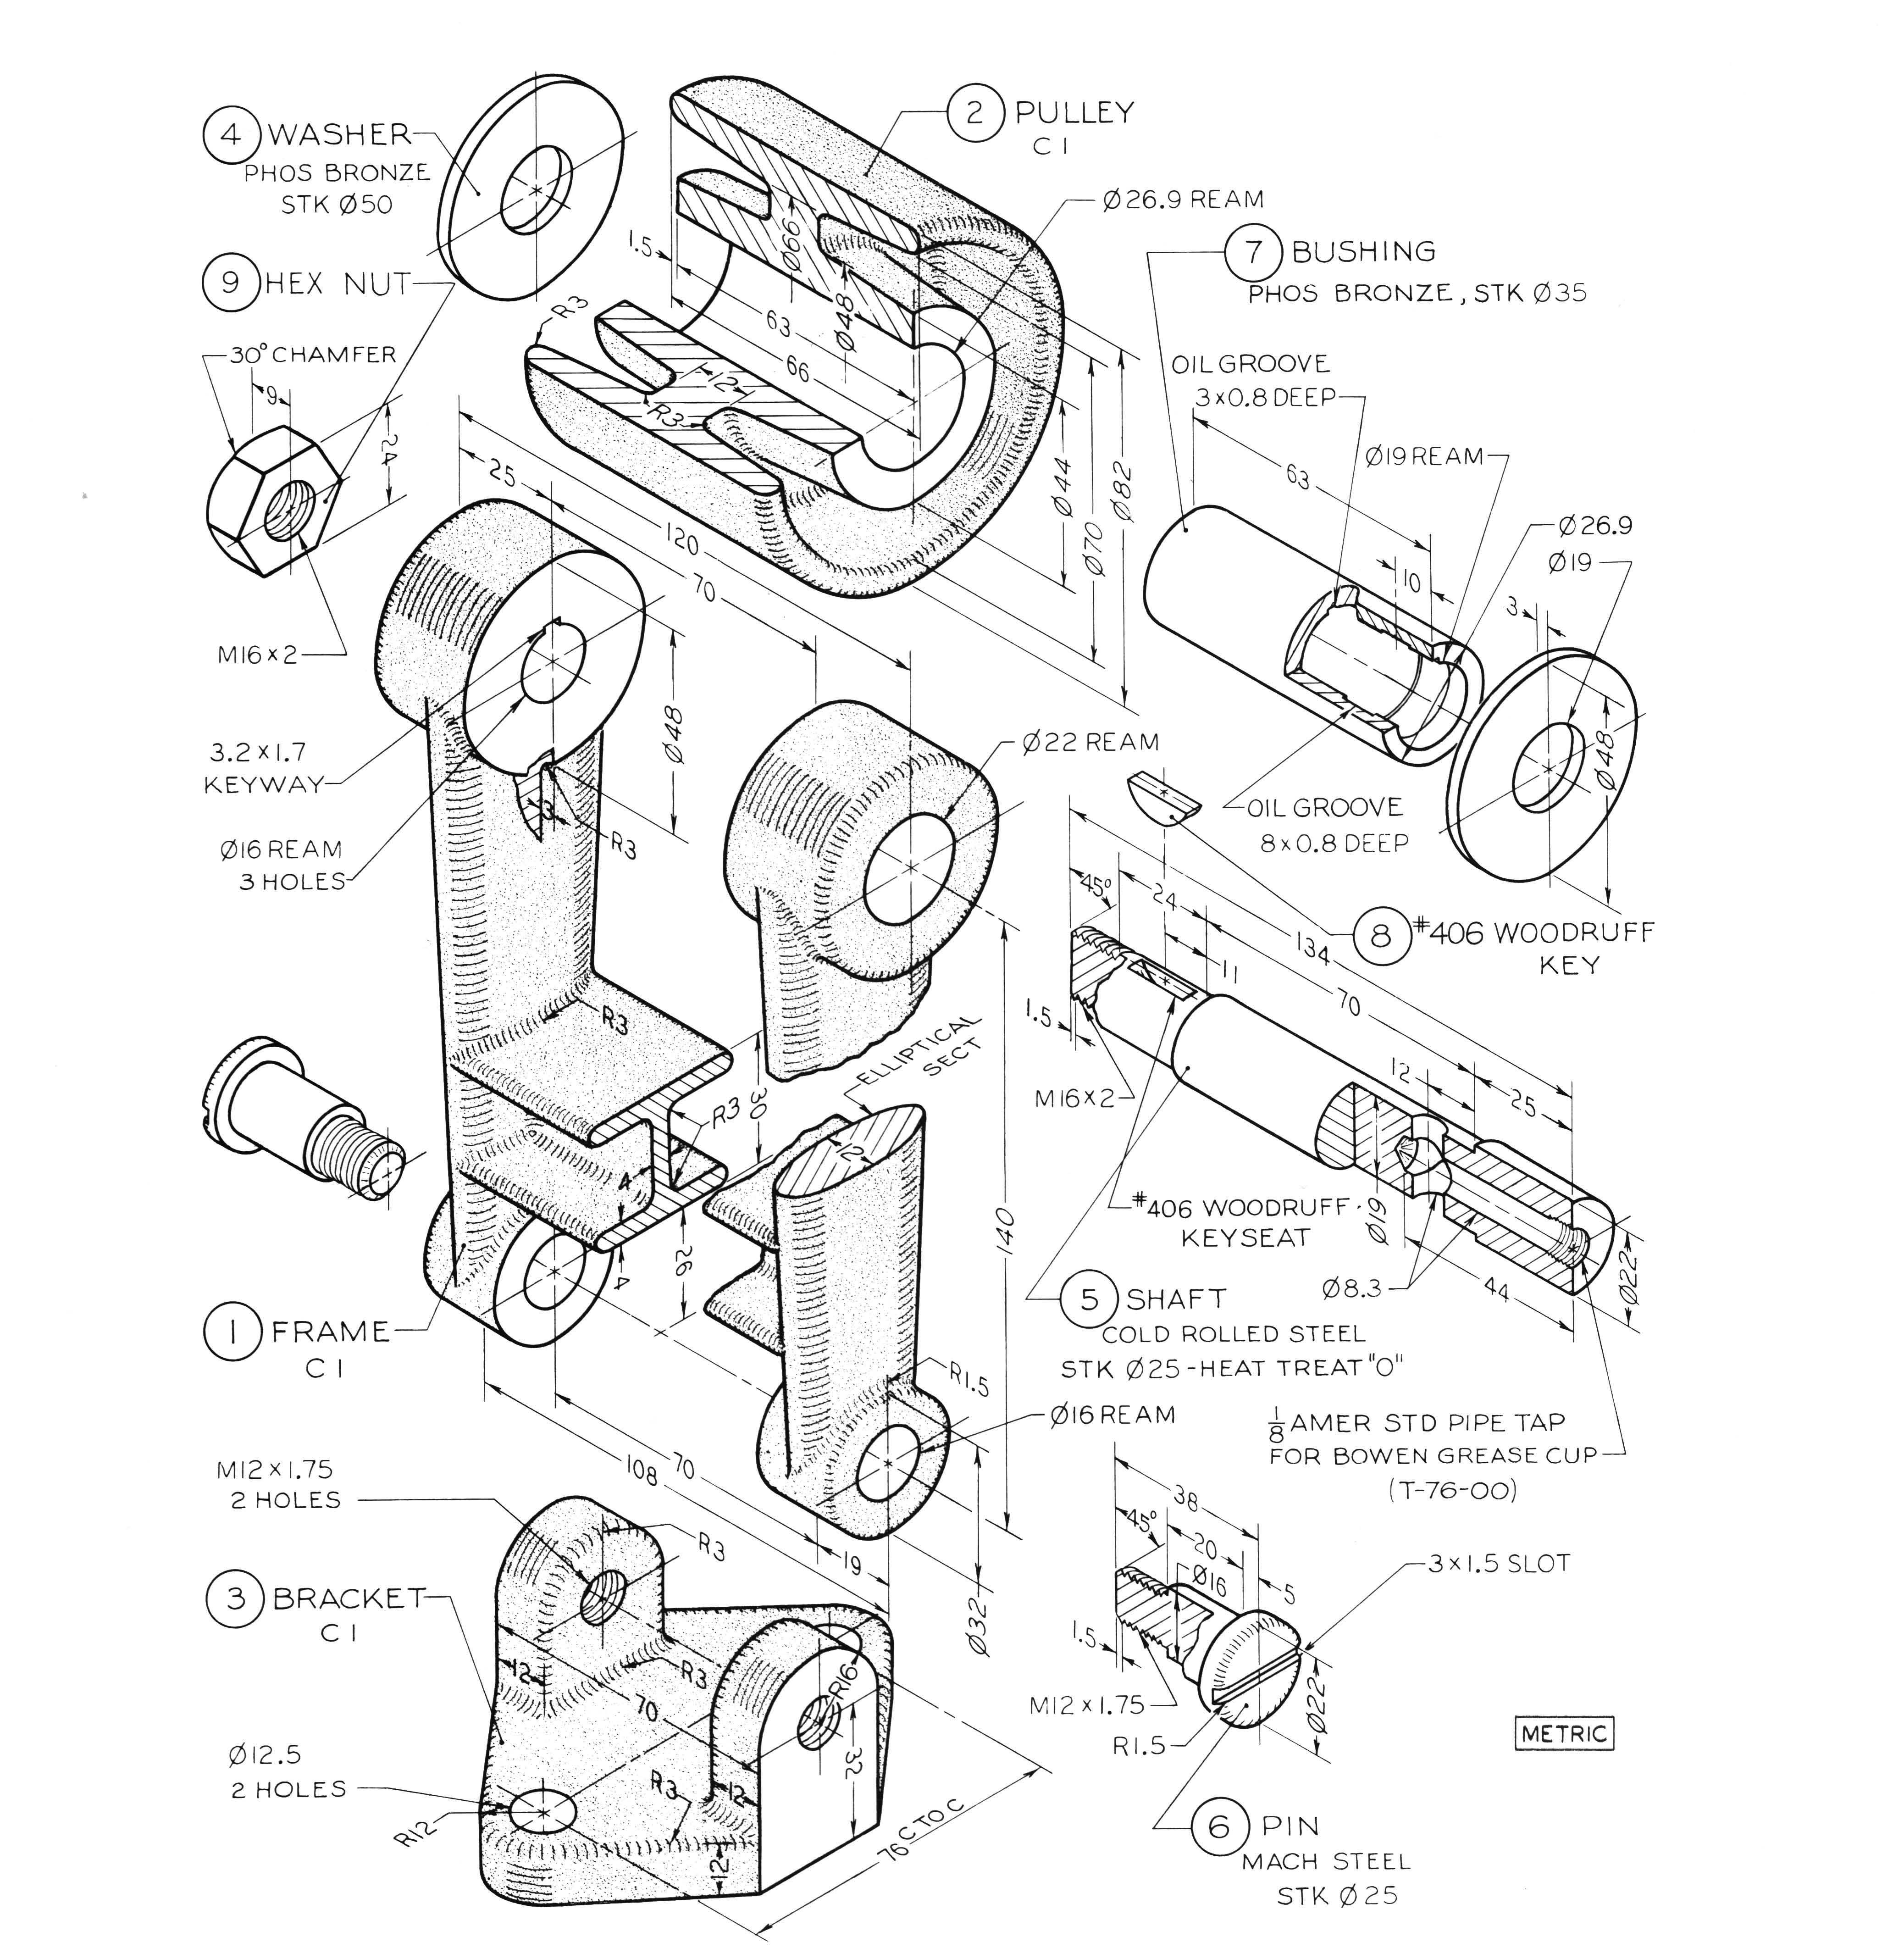 4152x4271 Pin By 0 On Cad Exercises Drawings, 3d Drawings And 3d